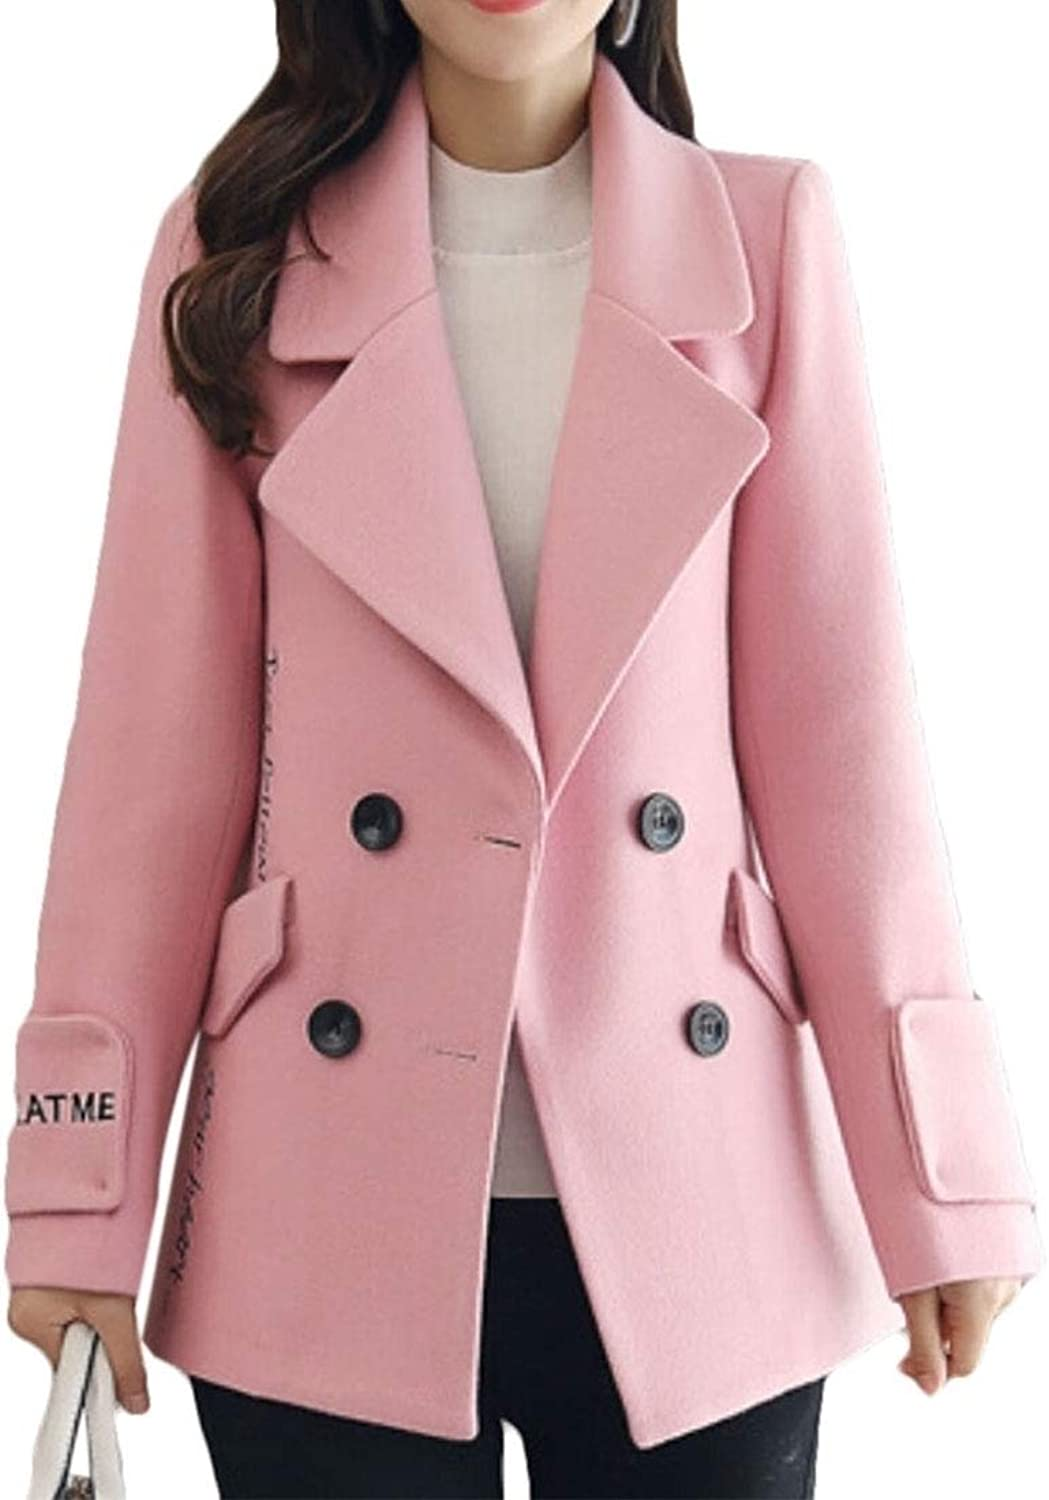 Maweisong Women's DoubleBreasted Wool Pea Coat Lapel Trench Coats Outwears